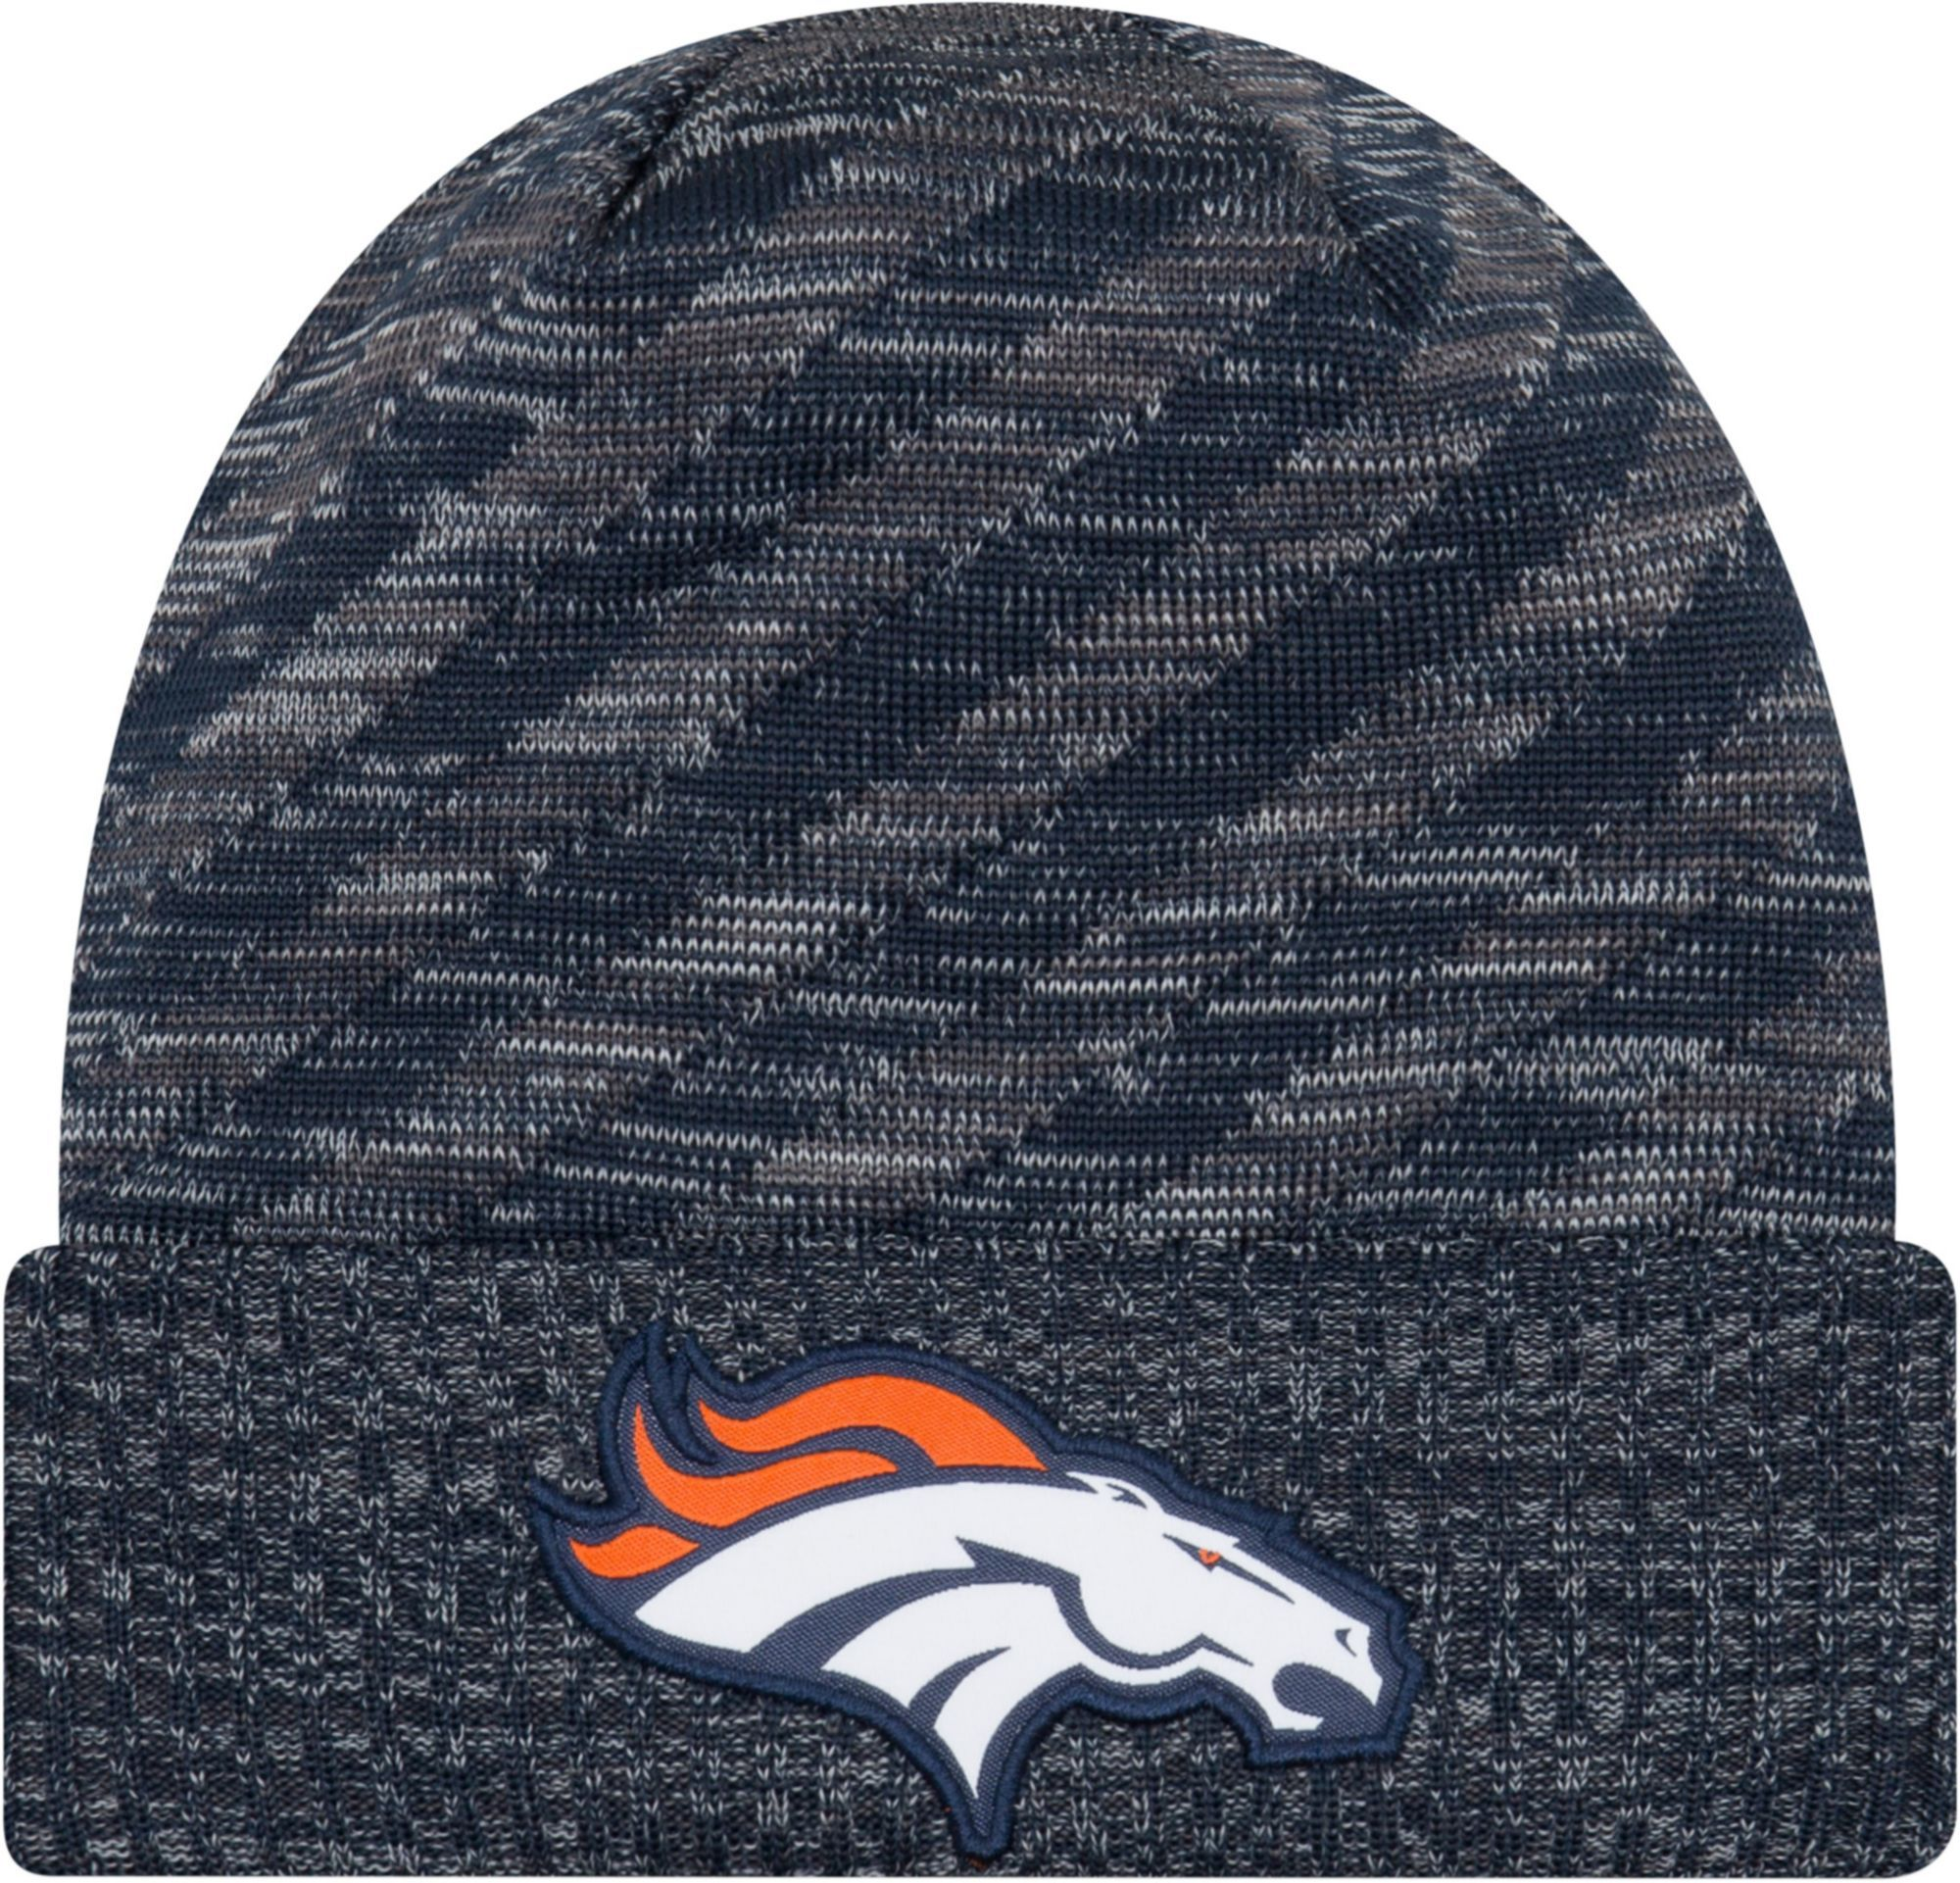 check out 449f0 28771 ... knit 7c1f2 cb449 germany new era mens denver sideline cold weather td  navy knit 7c1f2 cb449  norway get new era baltimore ravens white 2017 color  rush ...